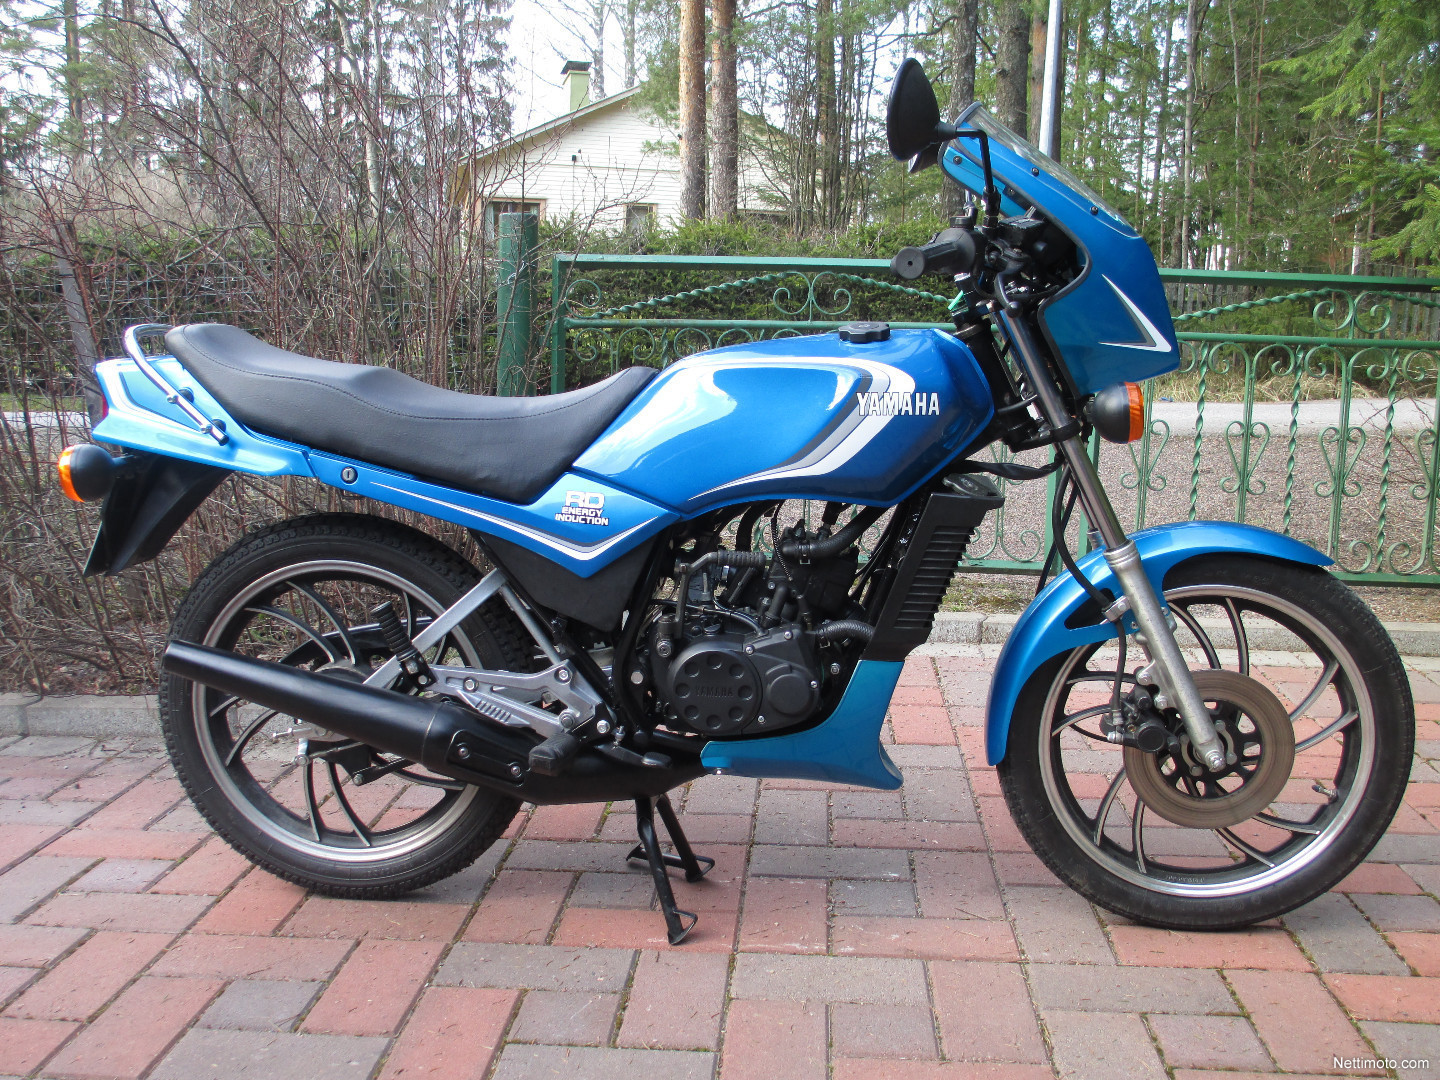 Yamaha Rd 125 Top Speed With Pipes